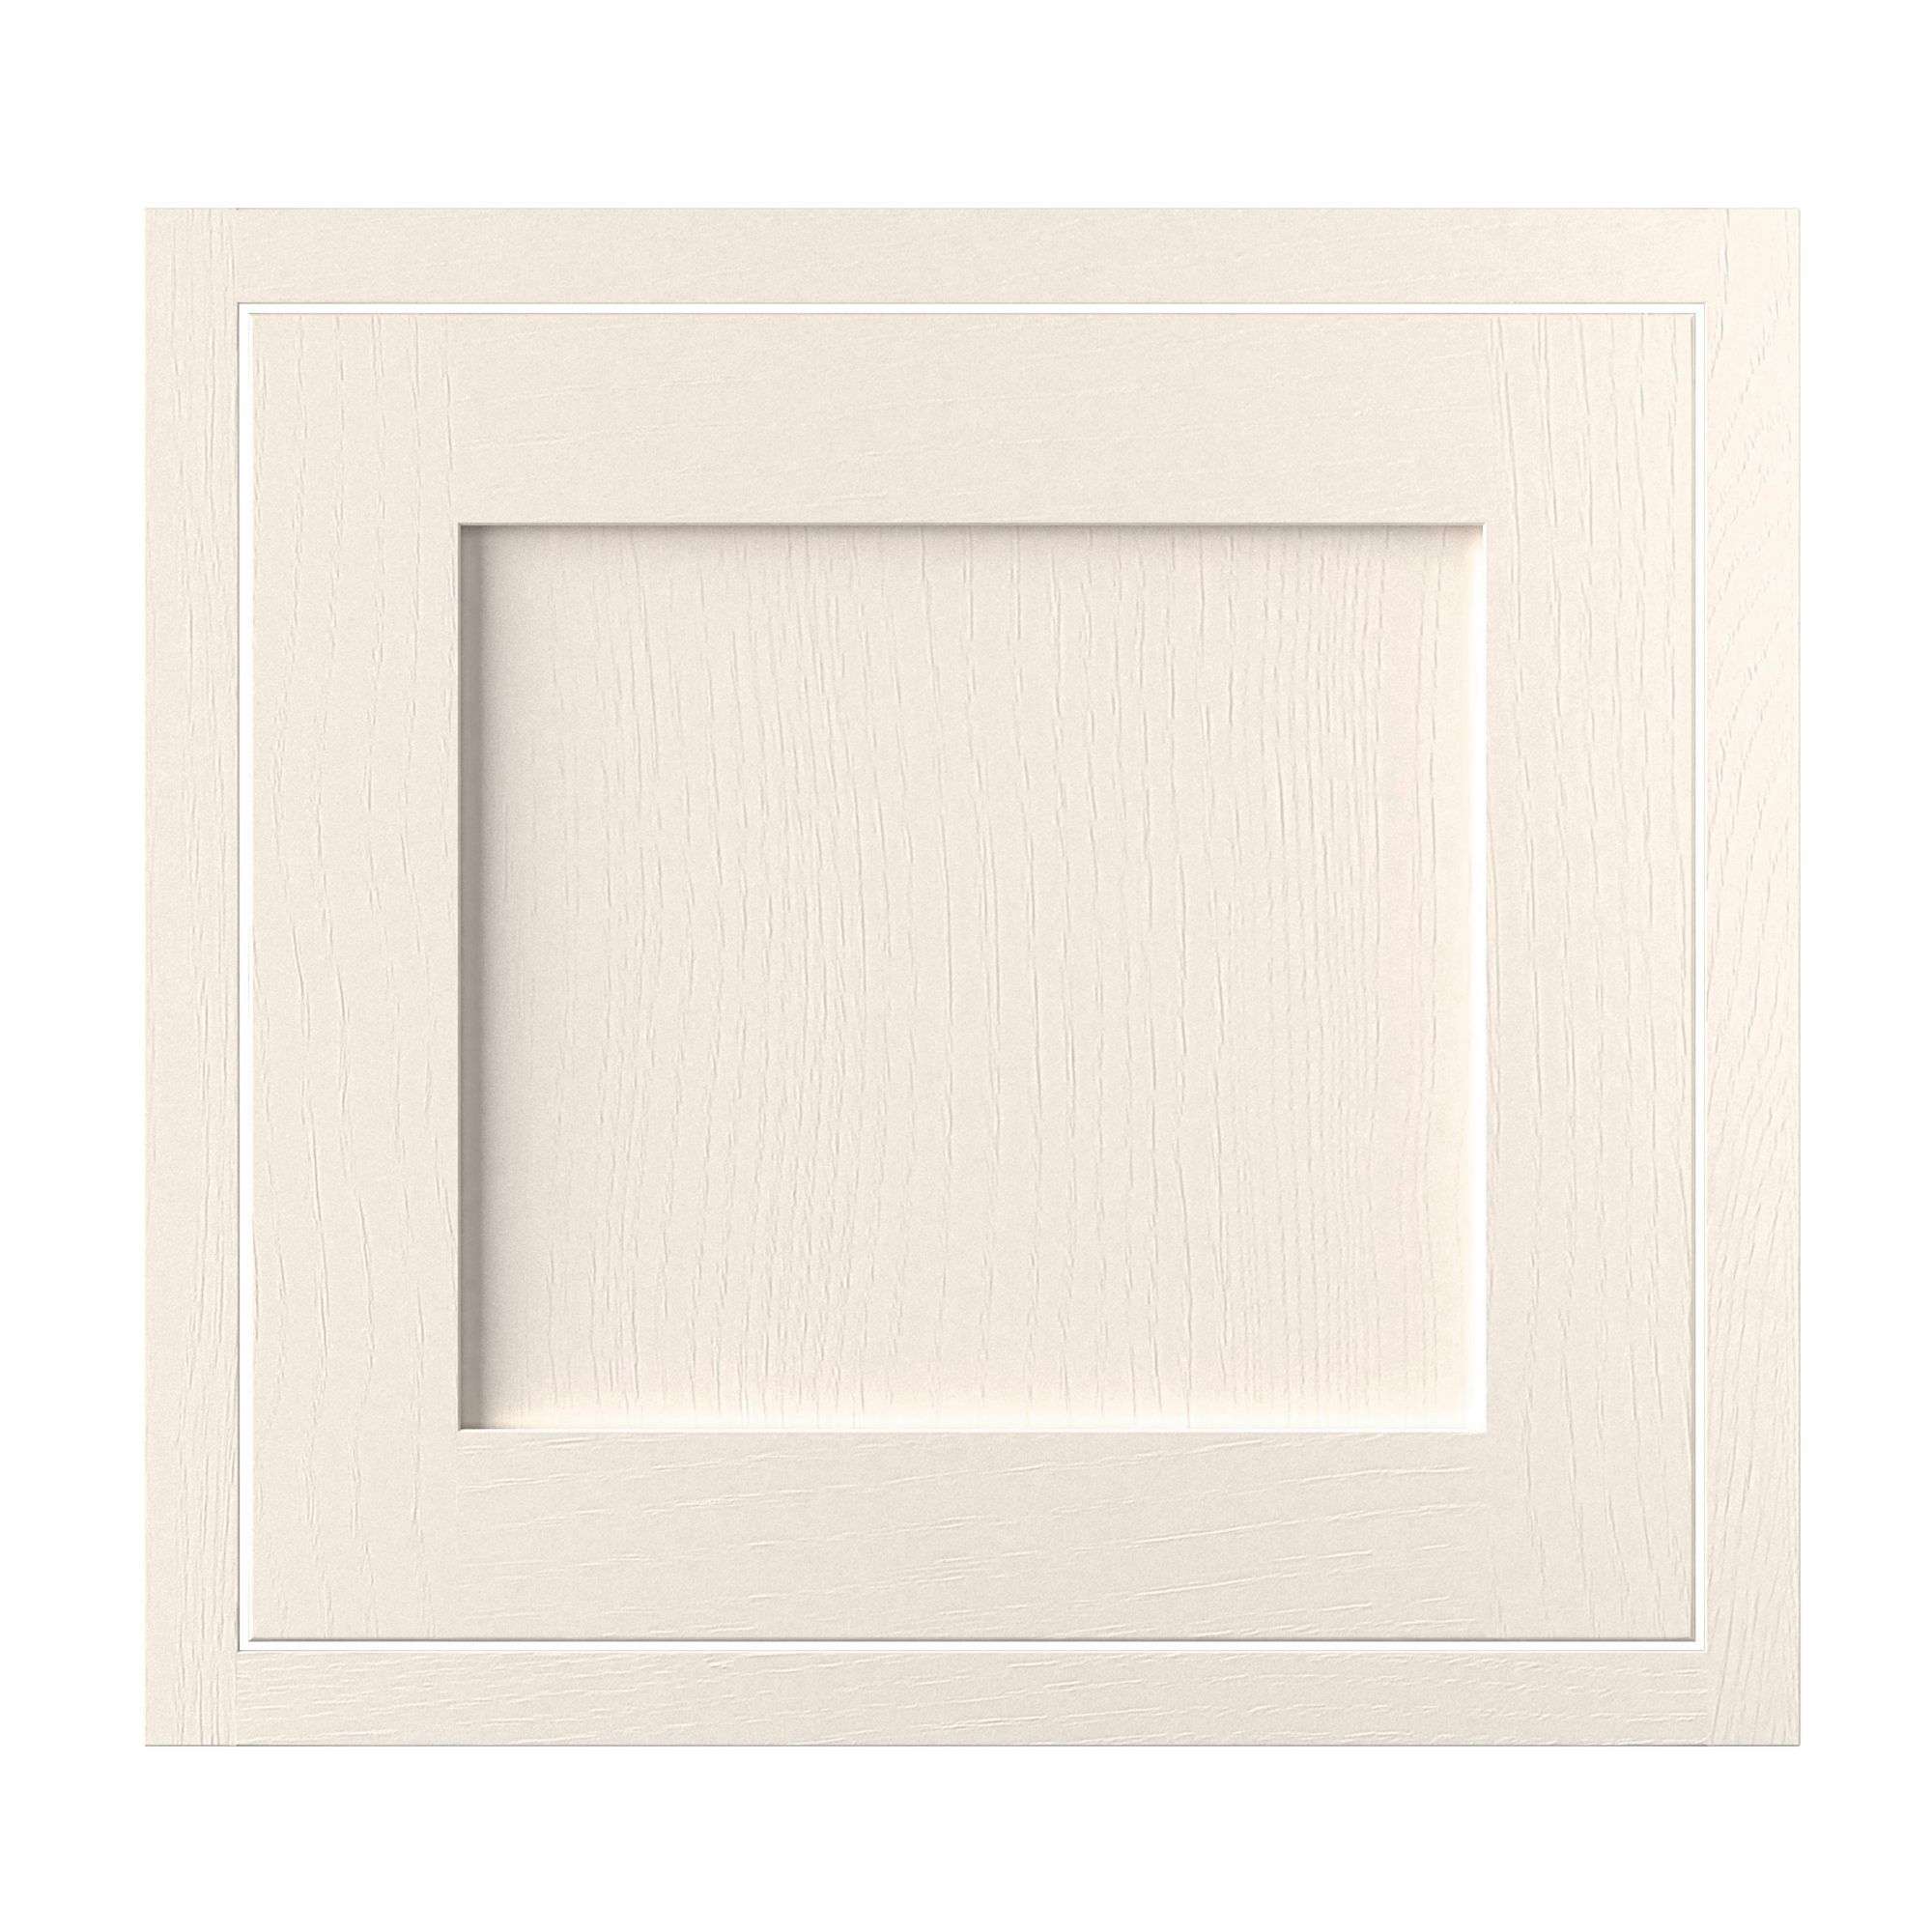 Cooke & Lewis Carisbrooke Ivory Framed Fixed Frame Semi-integrated Appliance Door (w)600mm